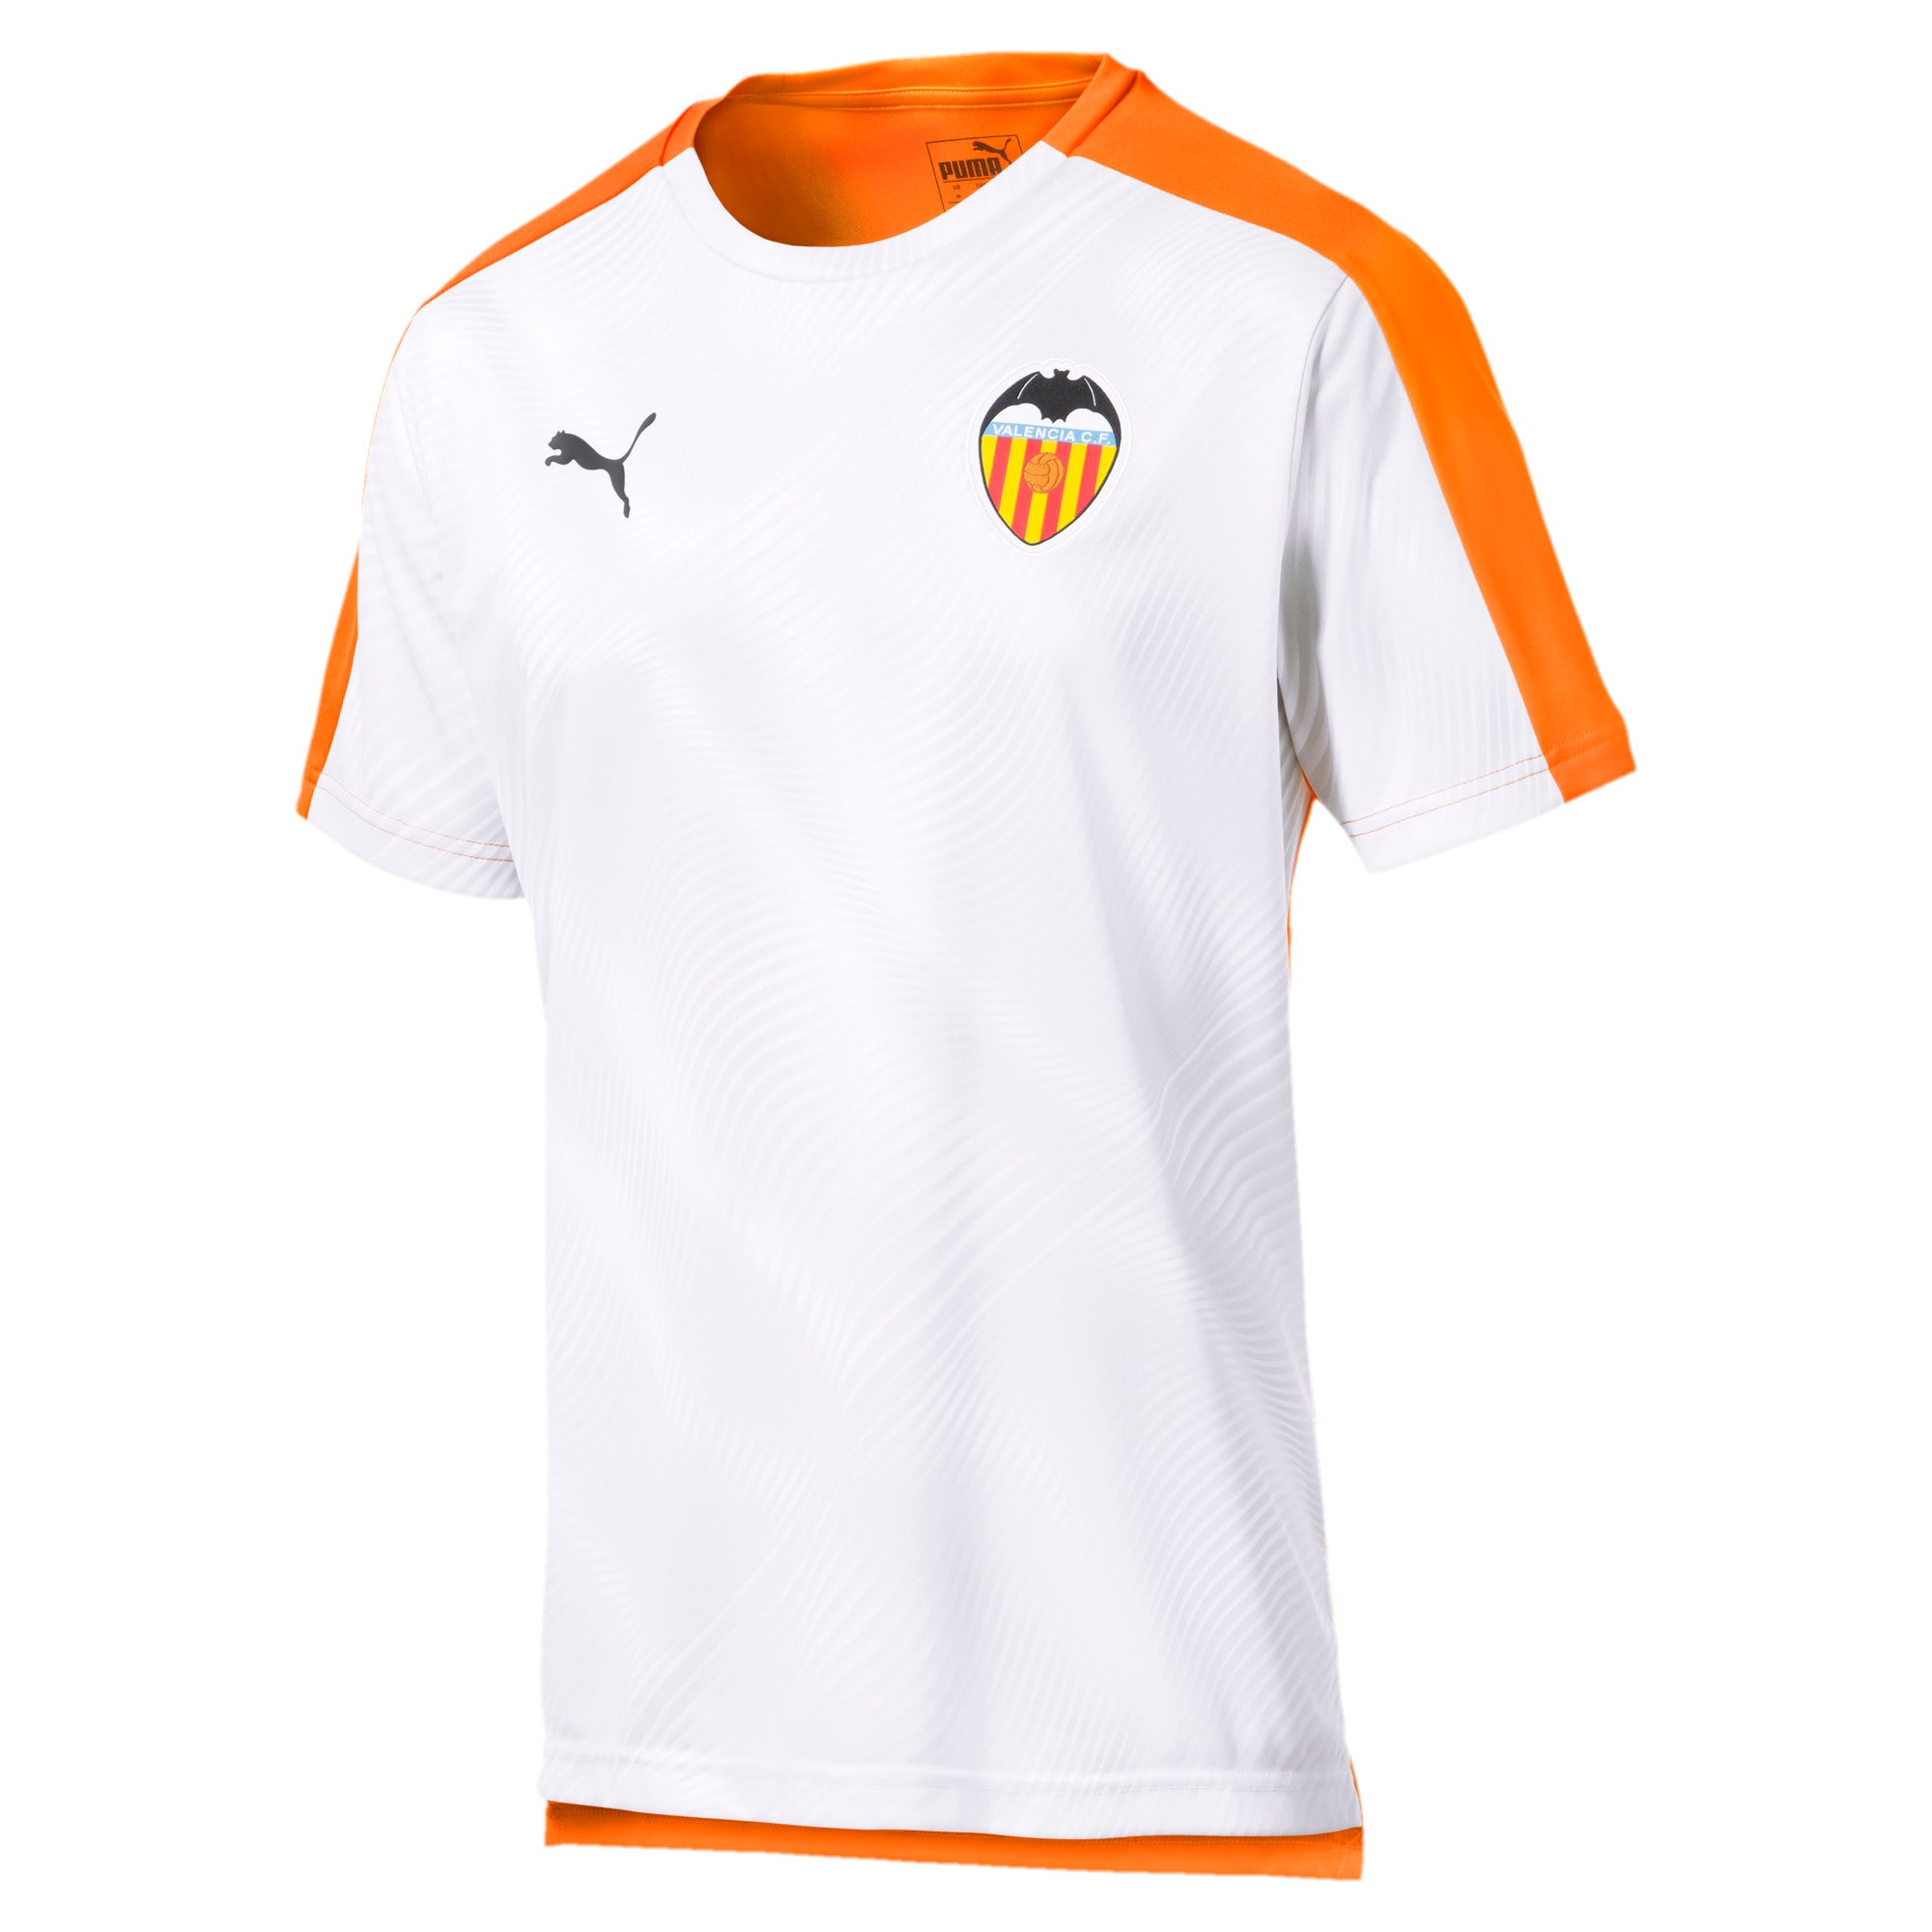 Thumbnail 1 of Valencia CF Men's Stadium Jersey, Vibrant Orange-Puma White, medium